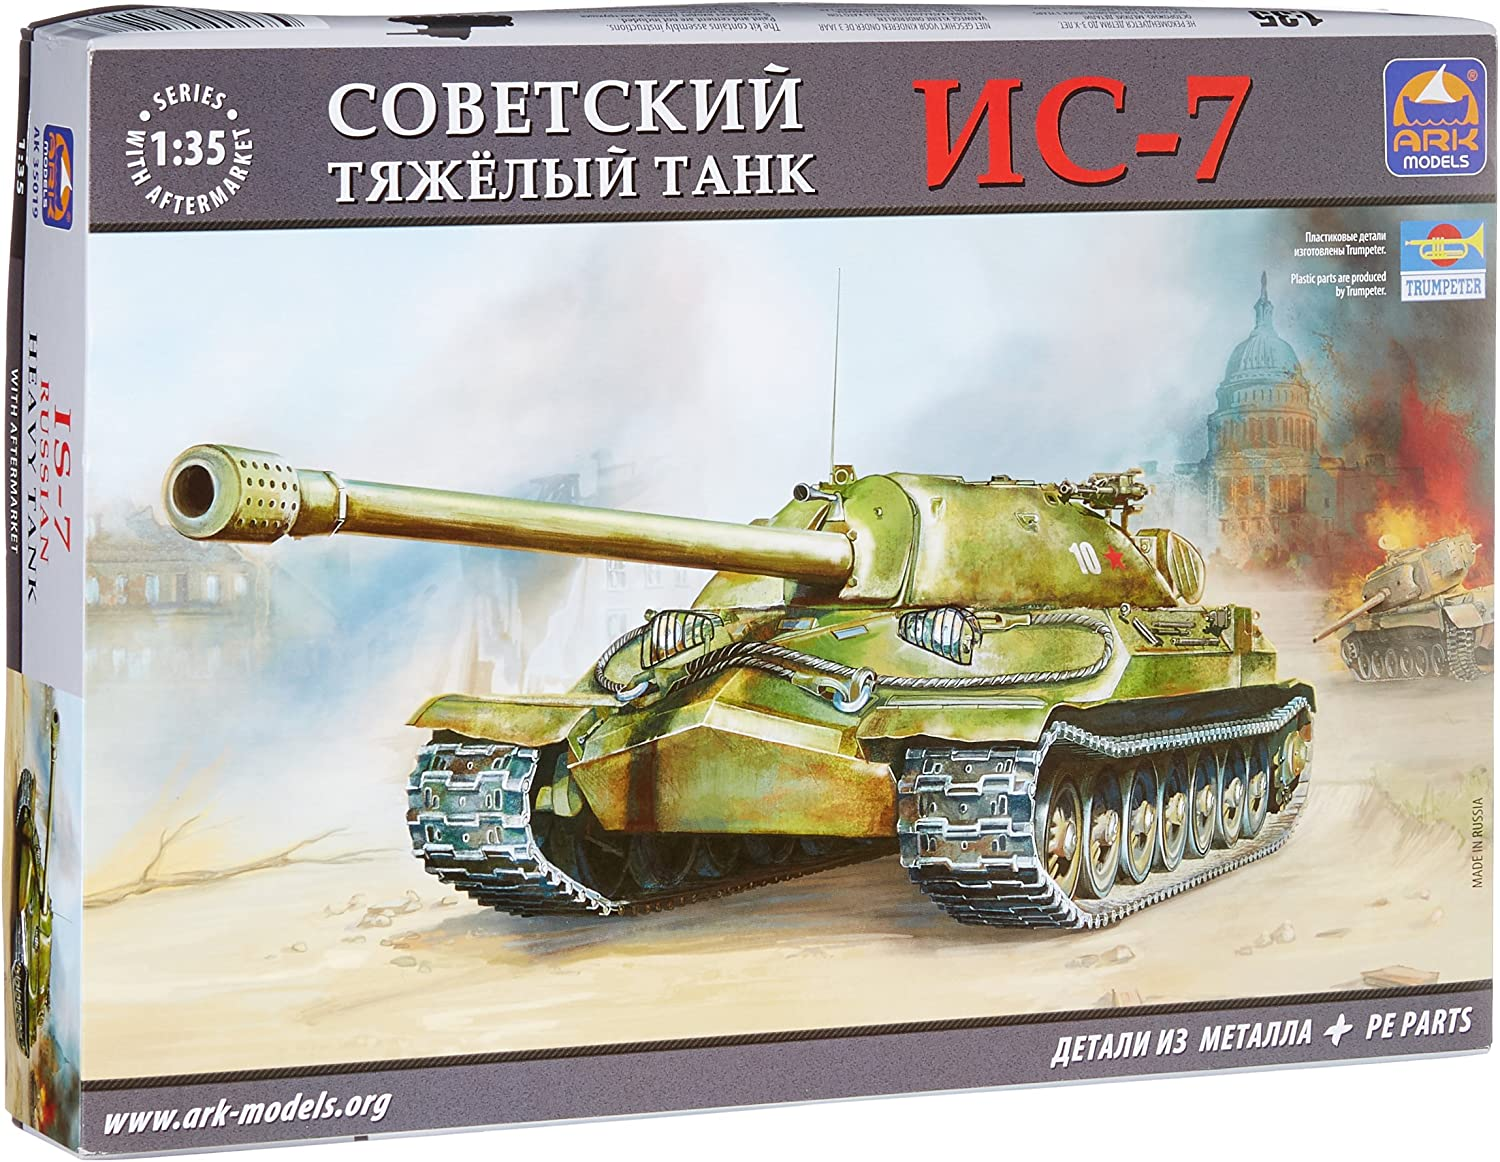 Ark Models AK35019 Modellbausatz is-7 Russian Heavy Tank(The kit Includes PE Parts)